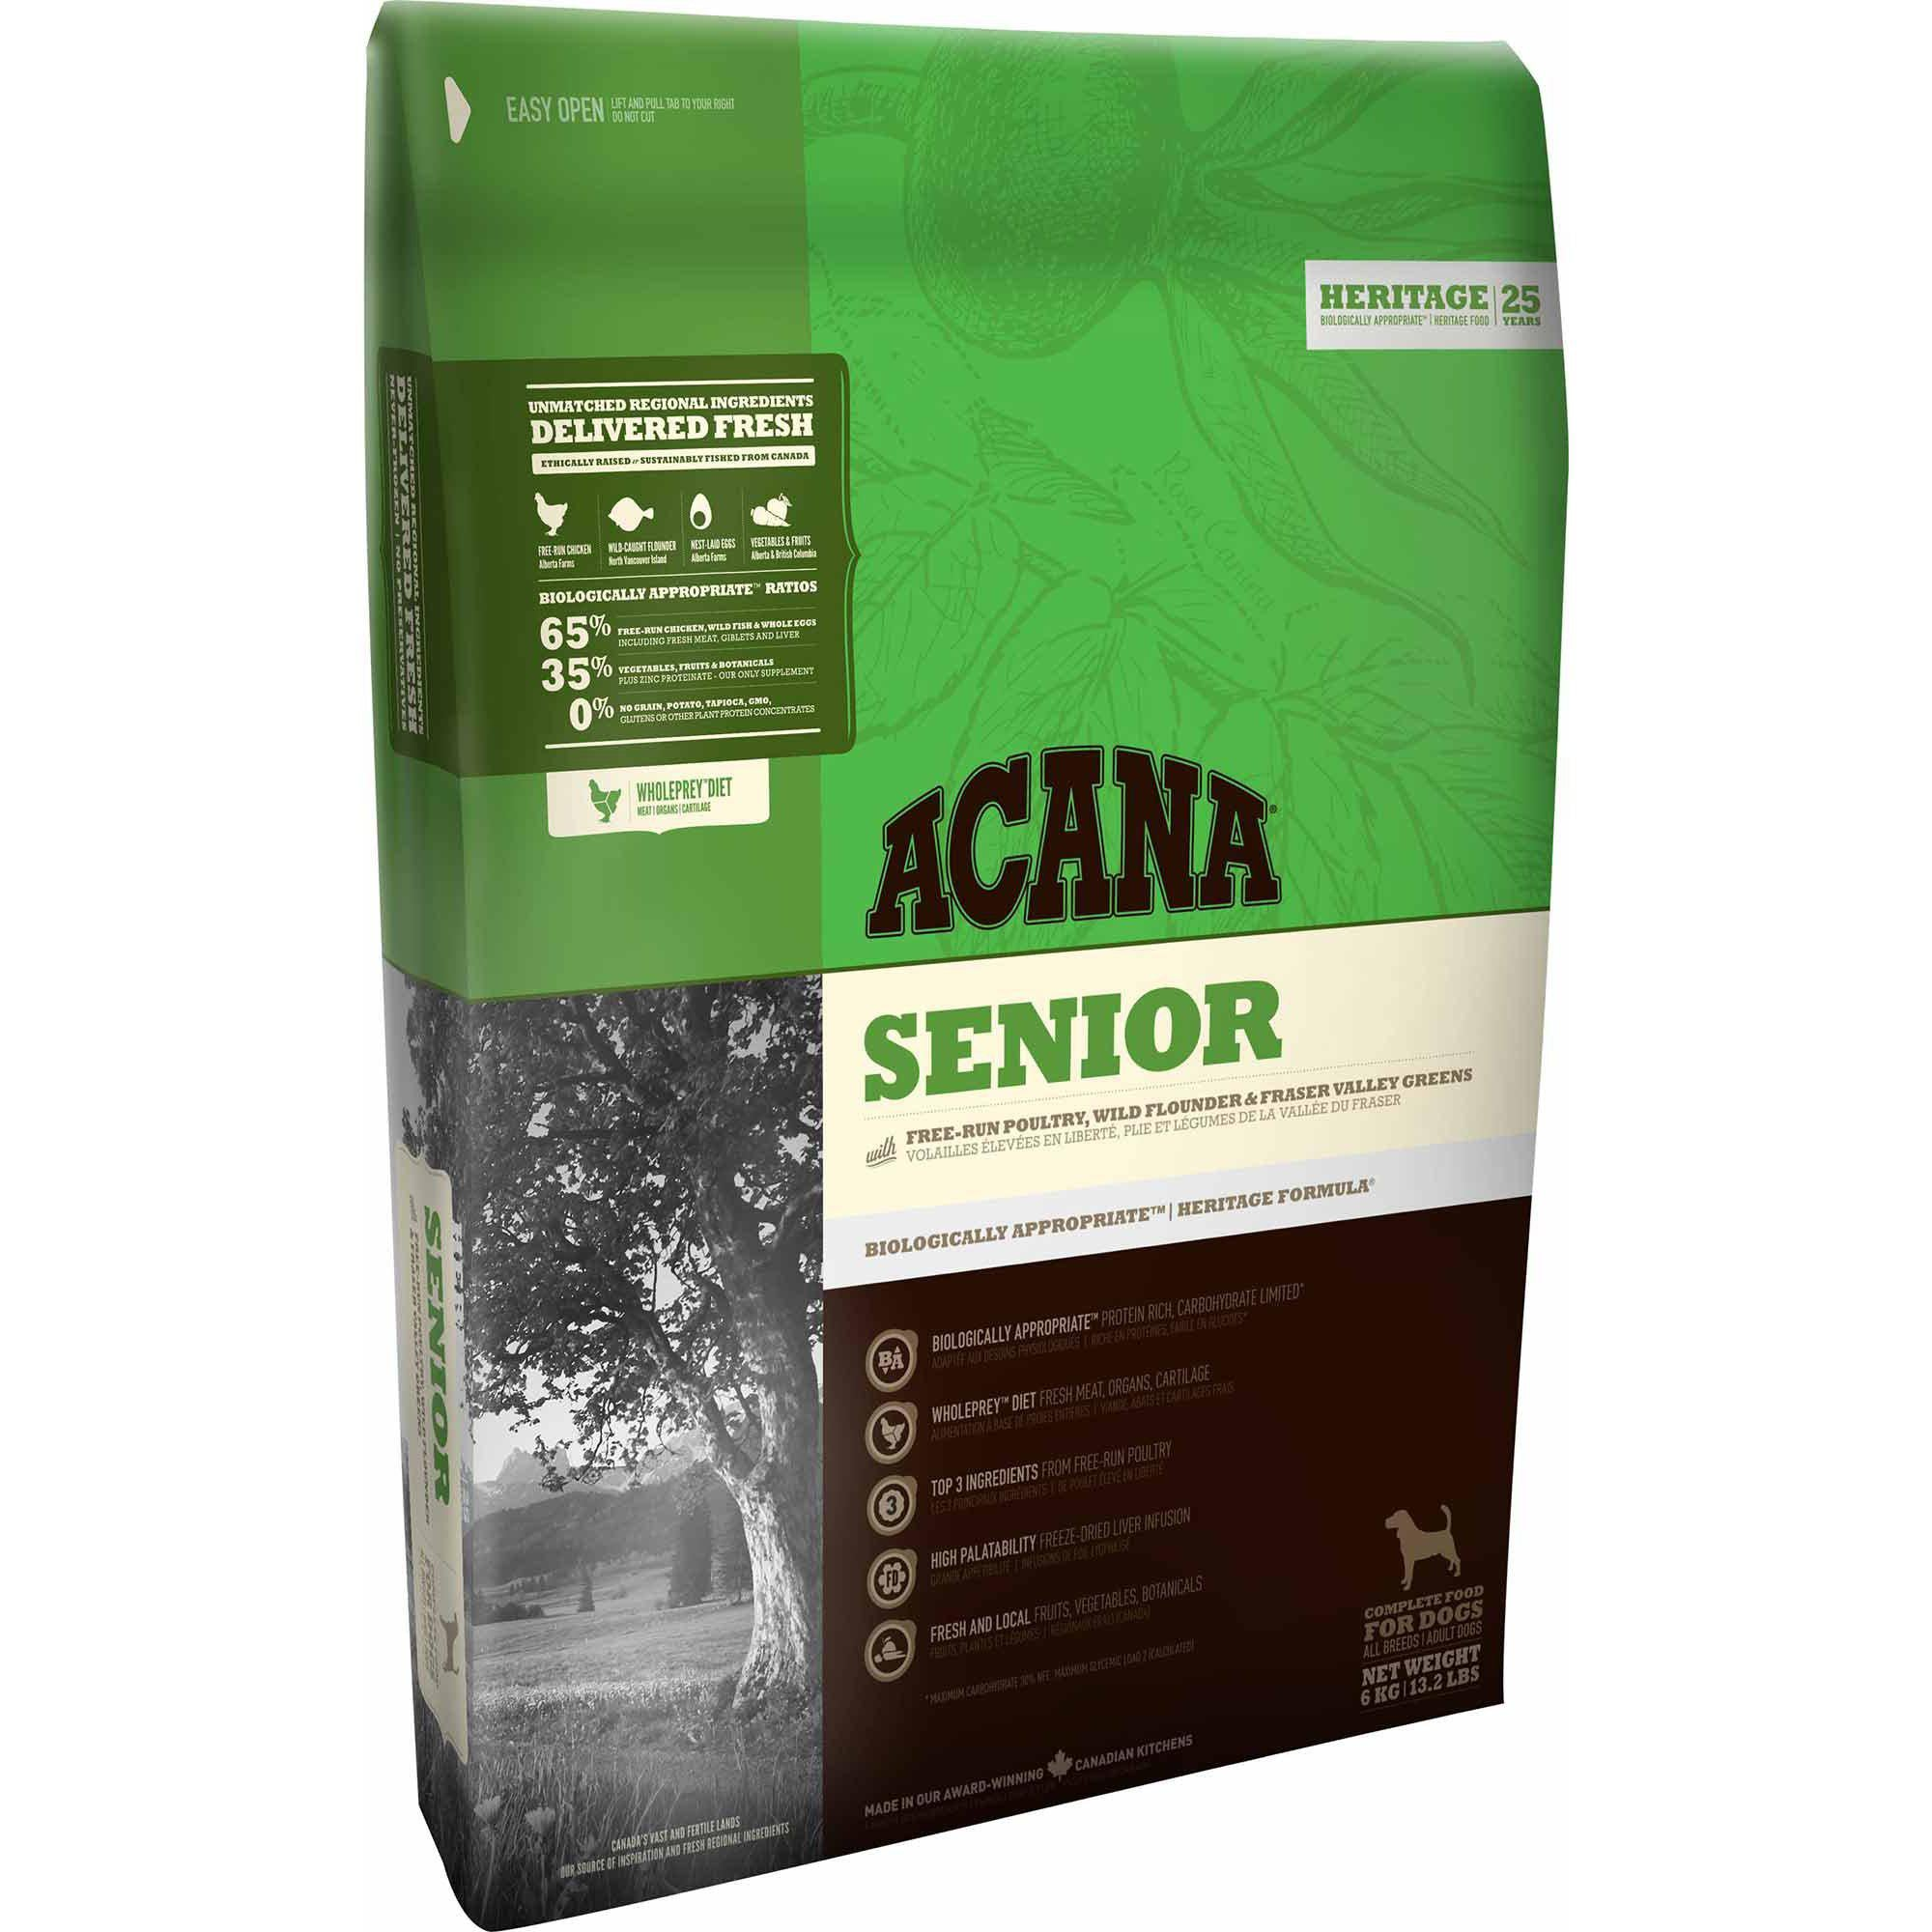 ACANA® HERITAGE Senior - Critter Country Supply Ltd.